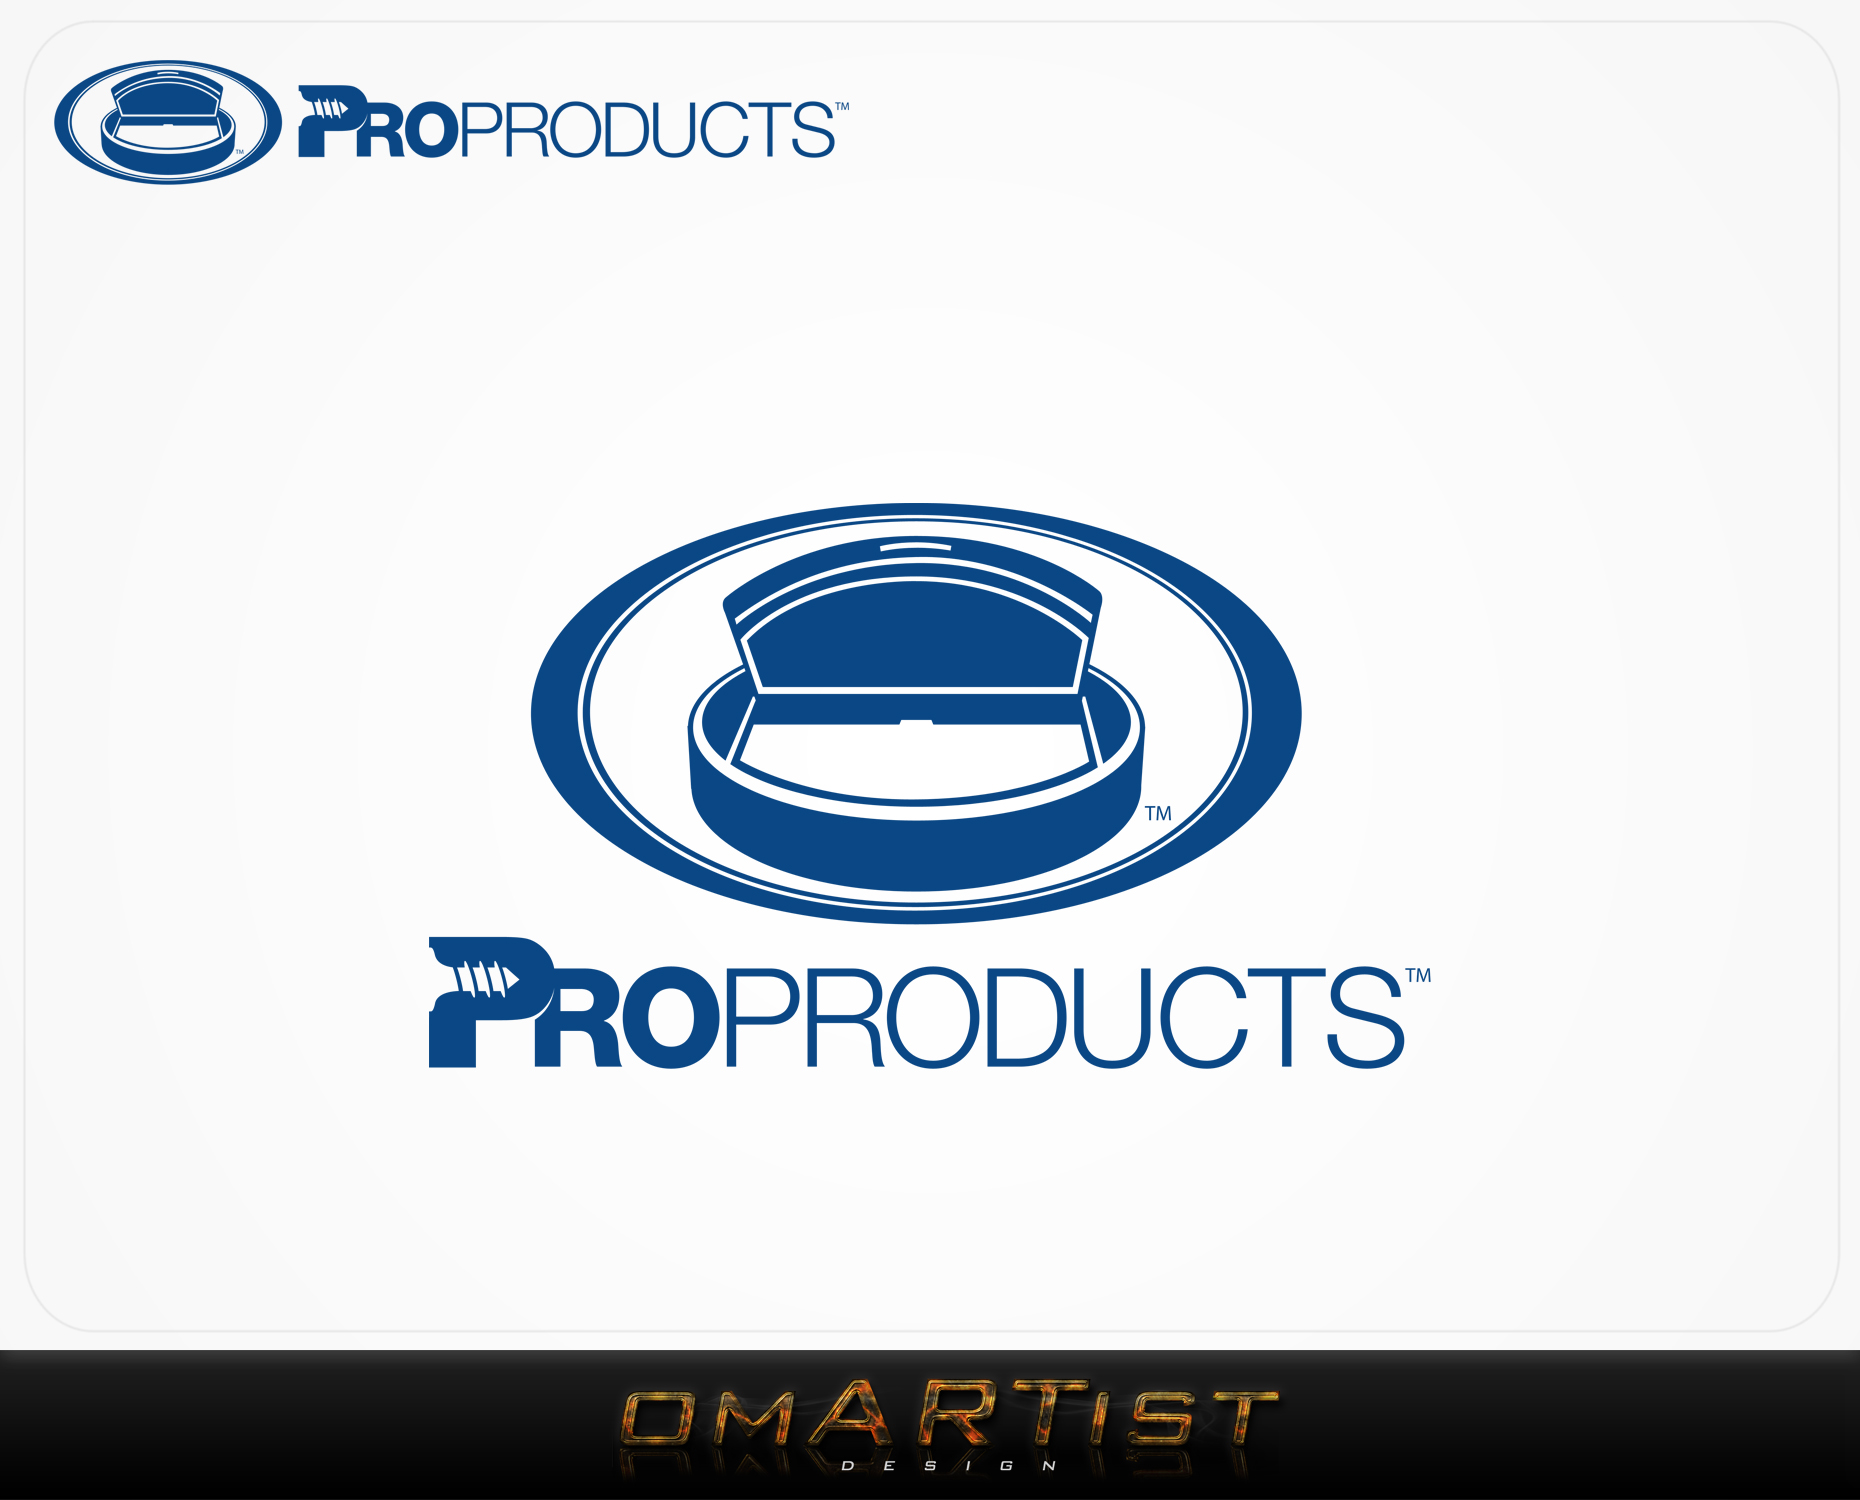 Logo Design by omARTist - Entry No. 58 in the Logo Design Contest Fun yet Professional Logo Design for ProProducts.